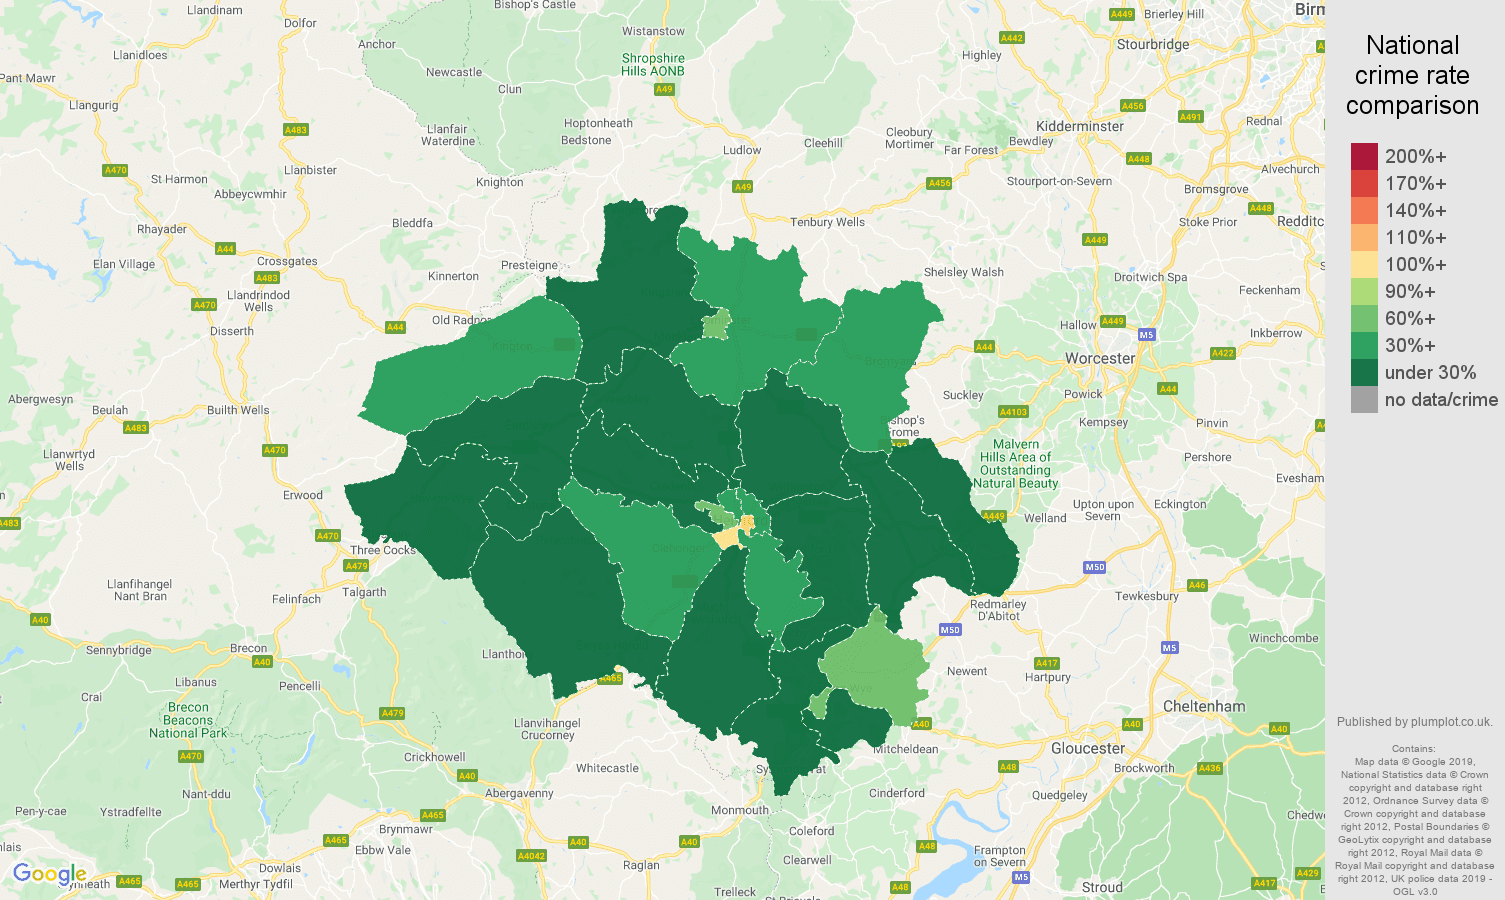 Hereford public order crime rate comparison map